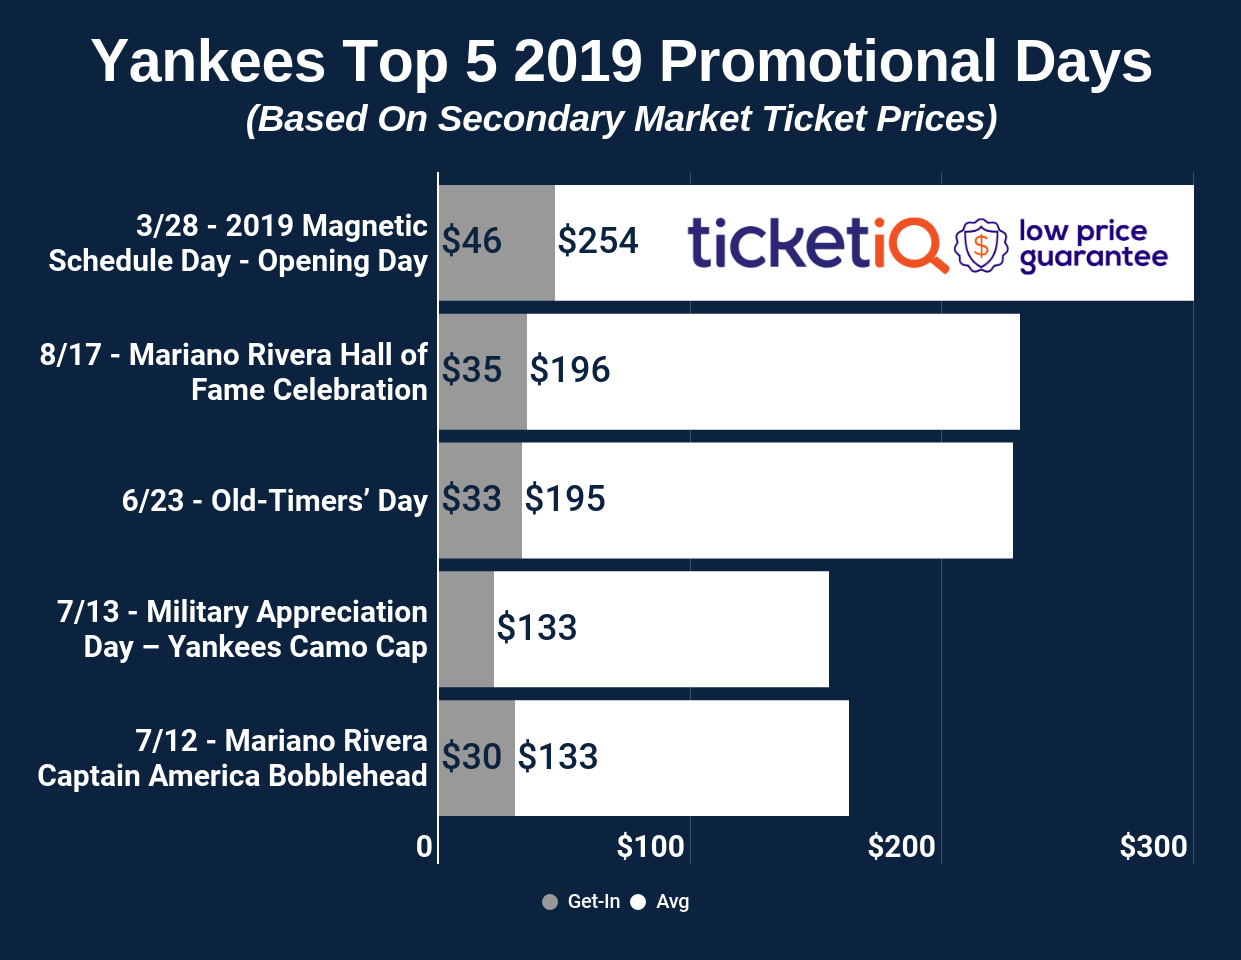 photo regarding New York Yankees Printable Schedule titled 2019 Fresh new York Yankees Advertising Giveaway Plan